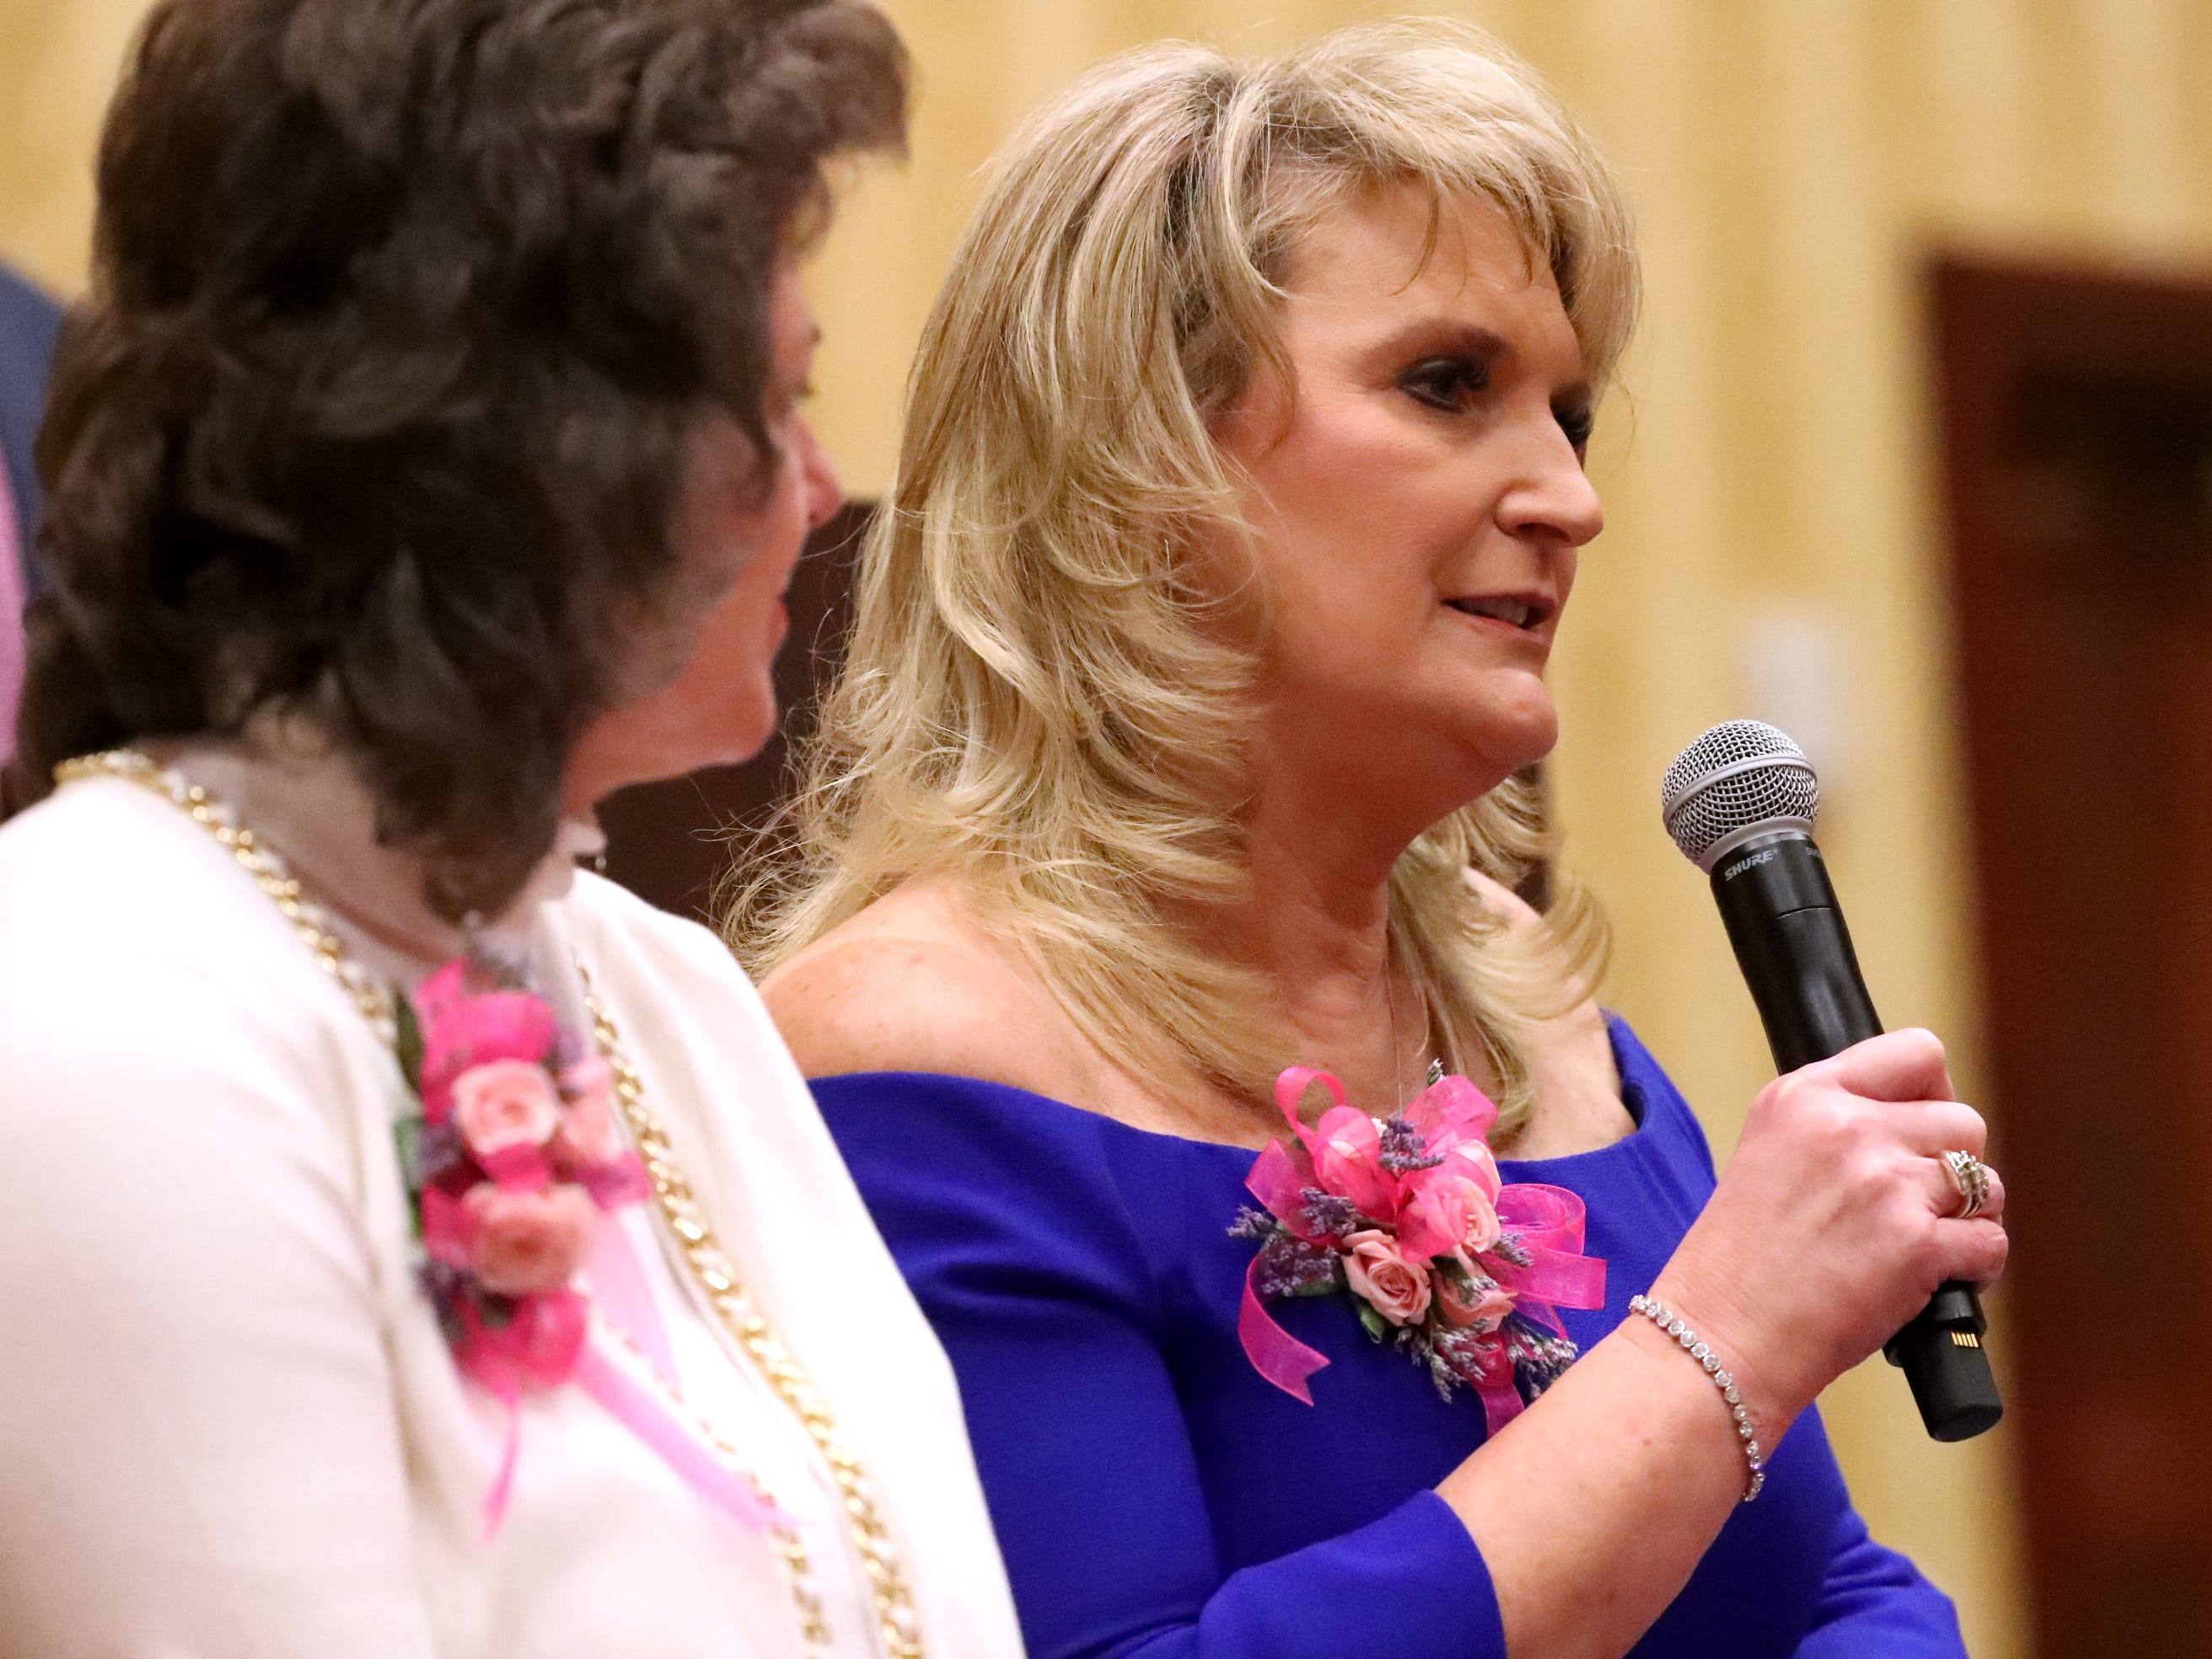 Honoree Sheri Morgan, owner of Tri Star Title and Escrow, answers questions during the Murfreesboro Magazine's 2019 Women in Business Luncheon on Tuesday, March 12, 2019, at the Embassy Suites Murfreesboro.